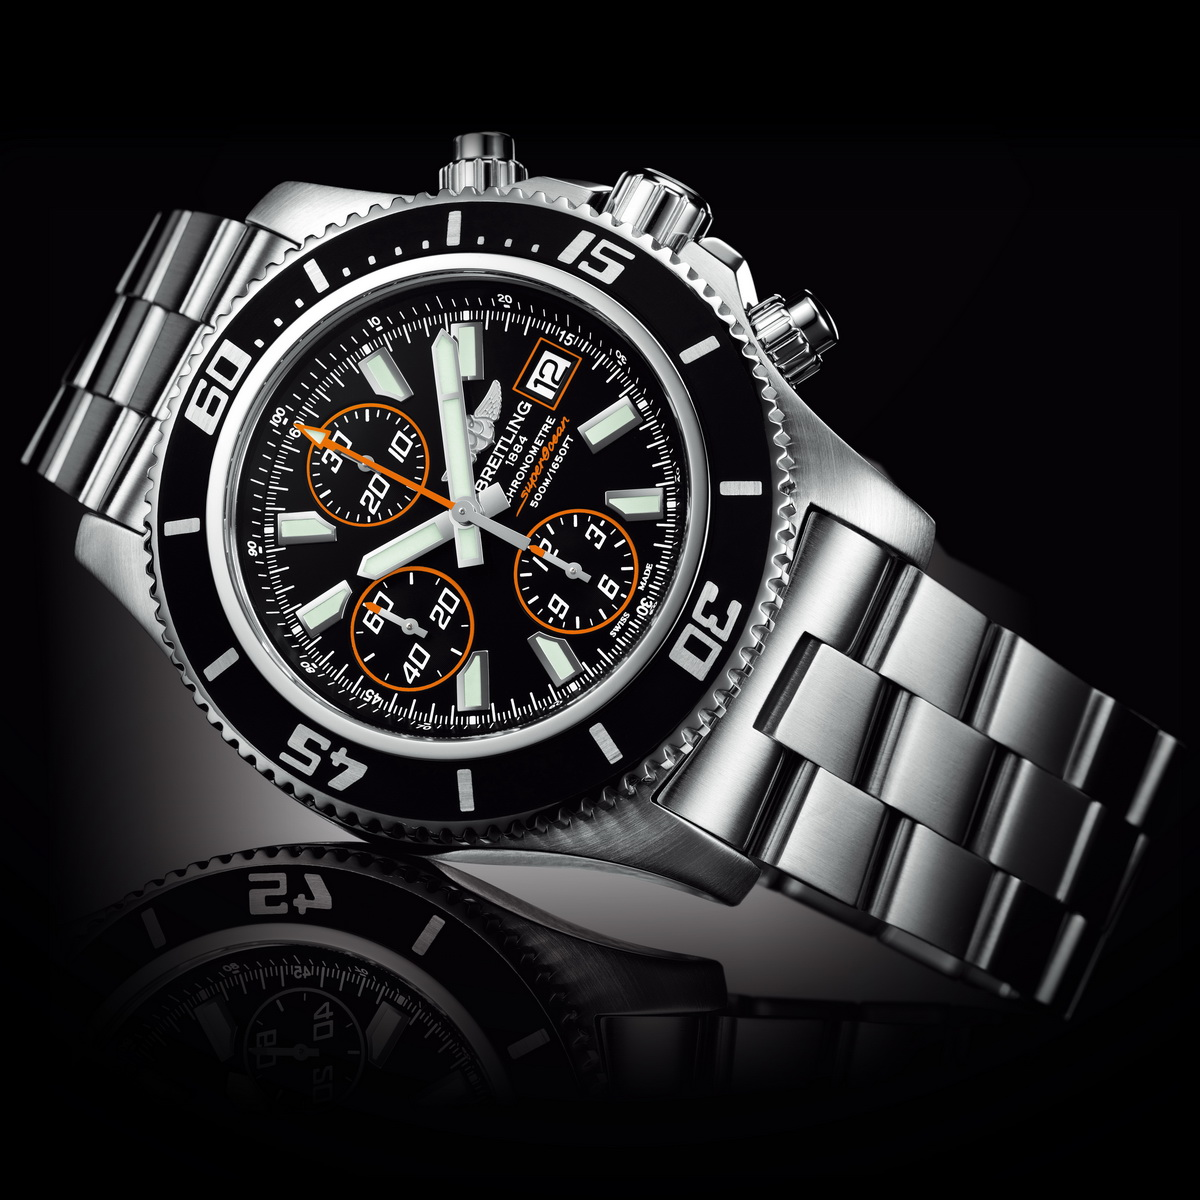 Breitling+superocean+chronograph+ii+review